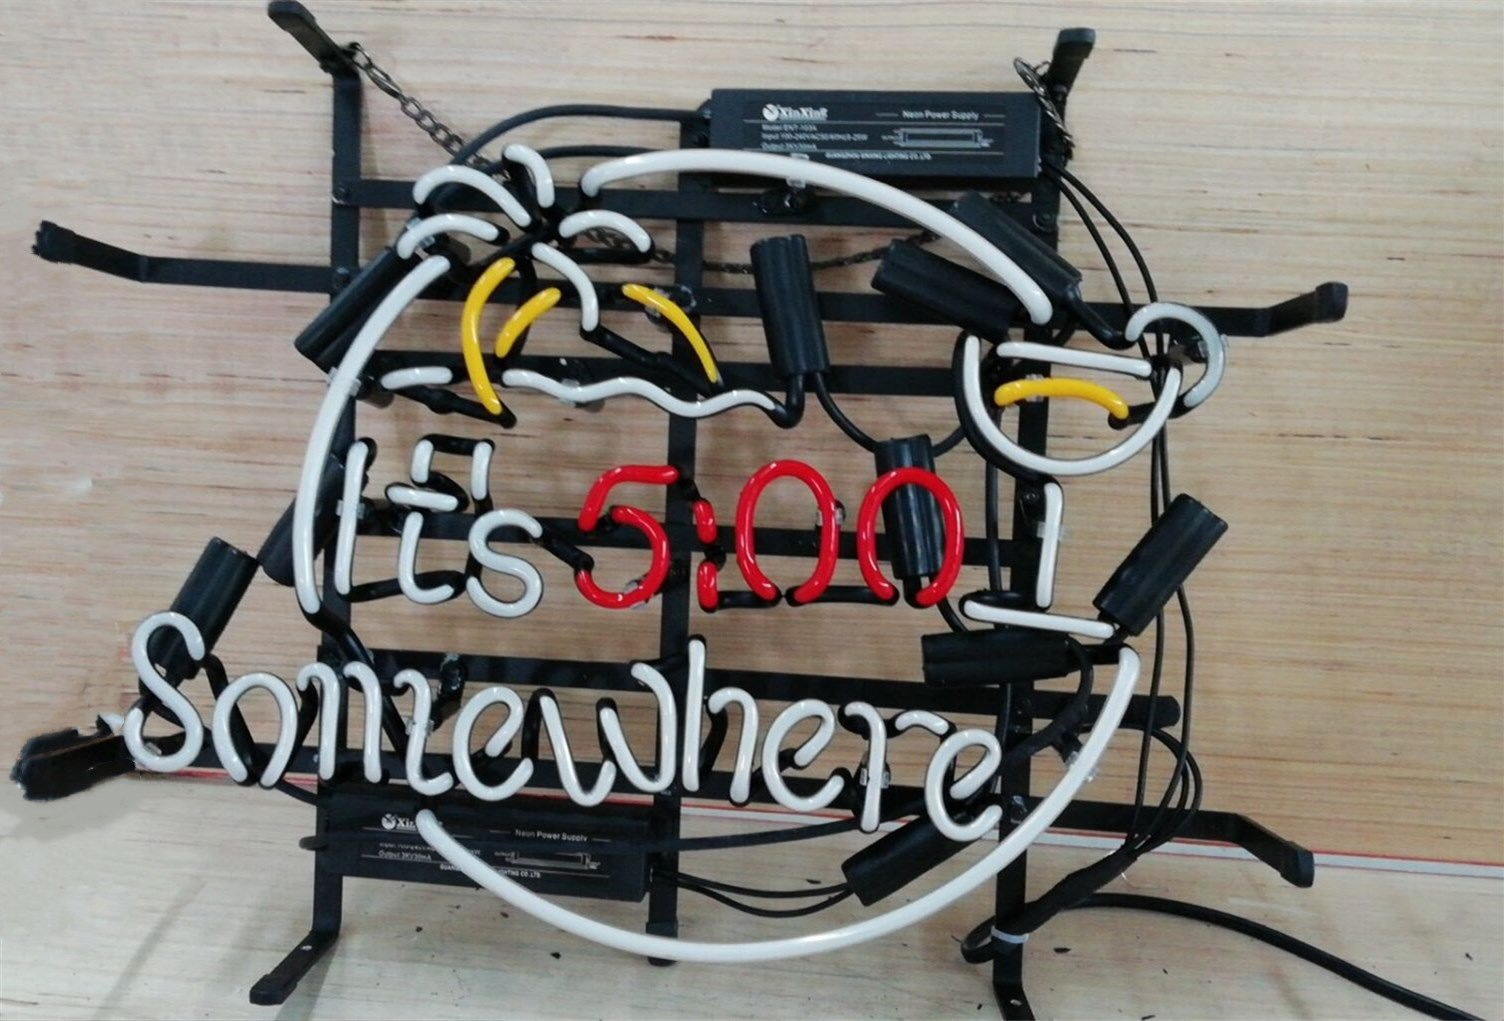 It's 5:00 Somewhere Metal Frame Neon Sign 17''X14'' Real Glass Neon Sign Light for Beer Bar Pub Garage Room.